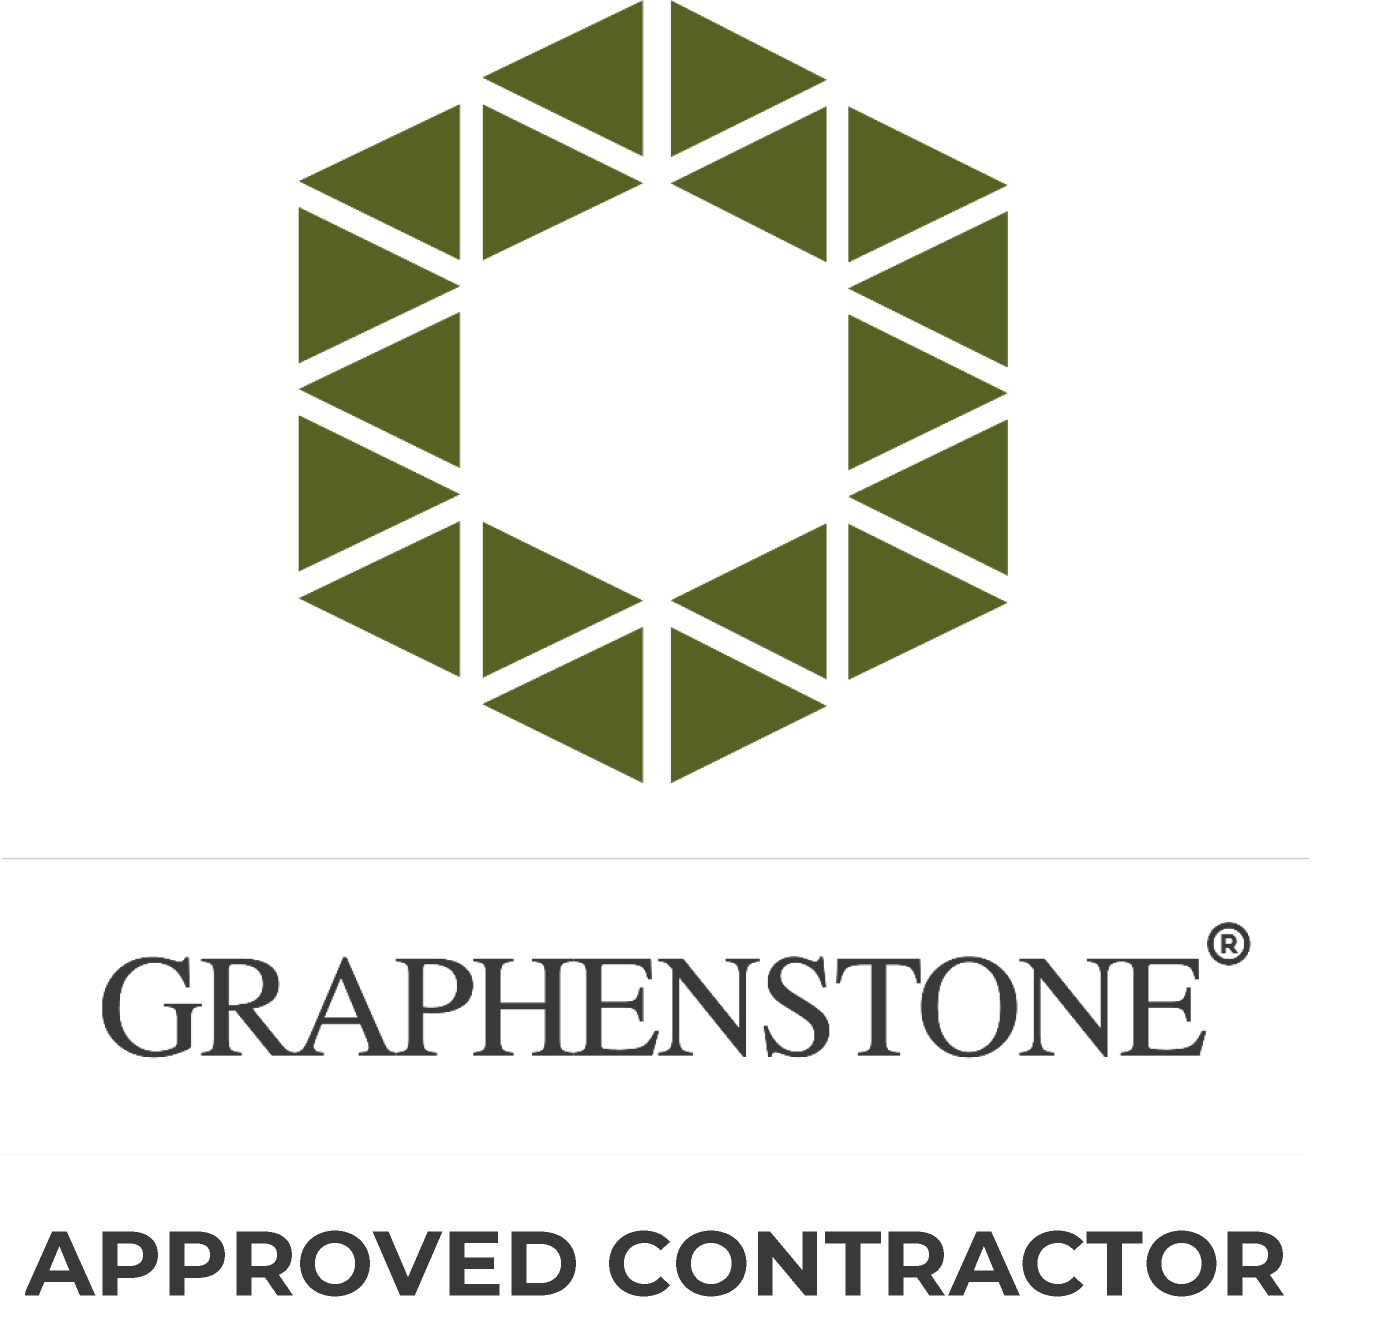 Graphenstone - APPROVED CONTRACTOR LOGO